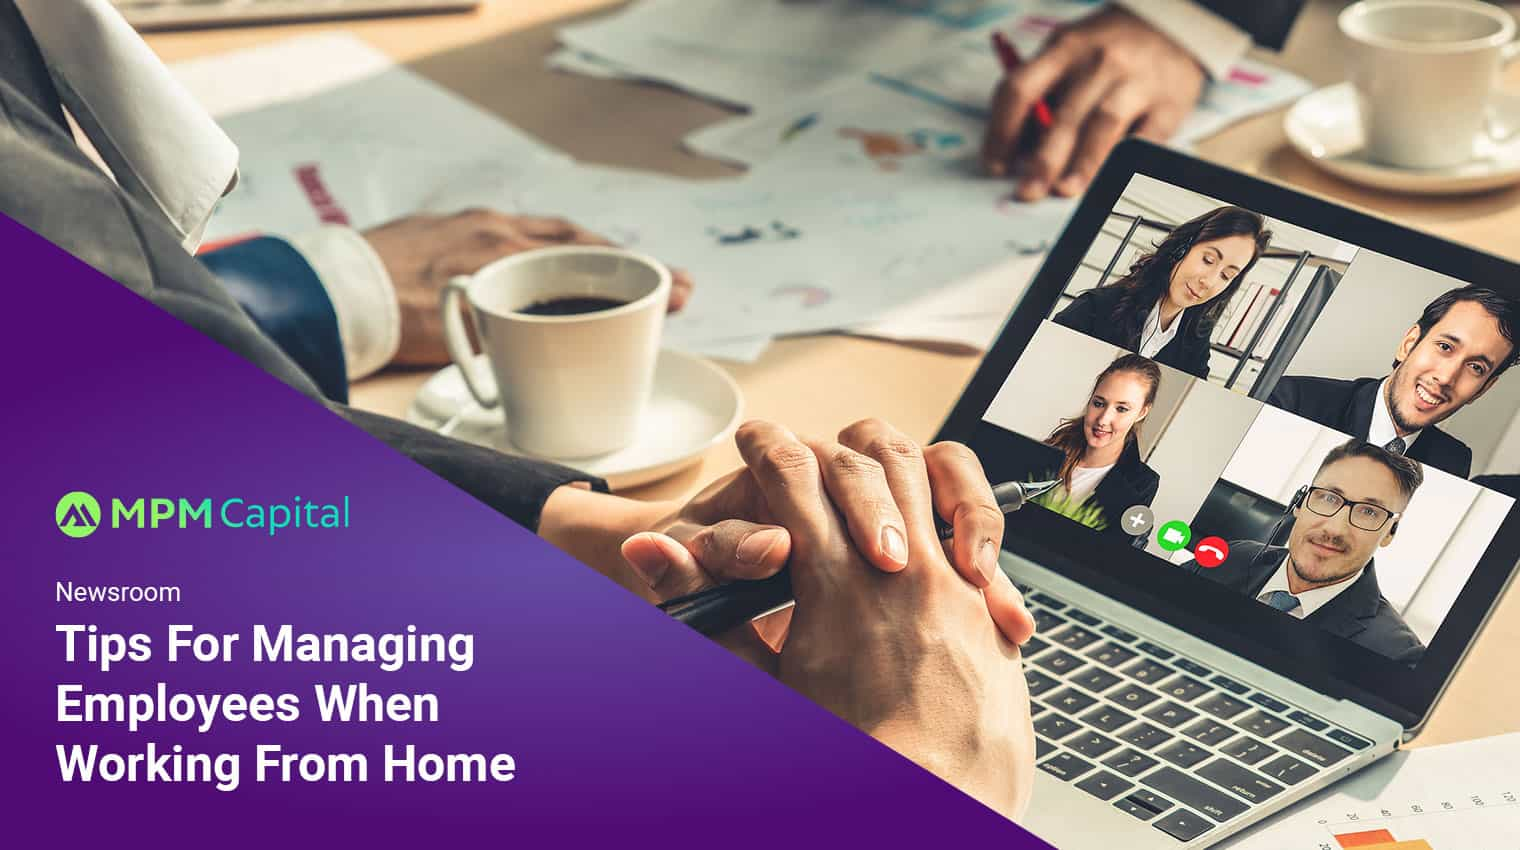 Tips-For-Managing-Employees-When-Working-From-Home-In-Singapore-MPM-Capital